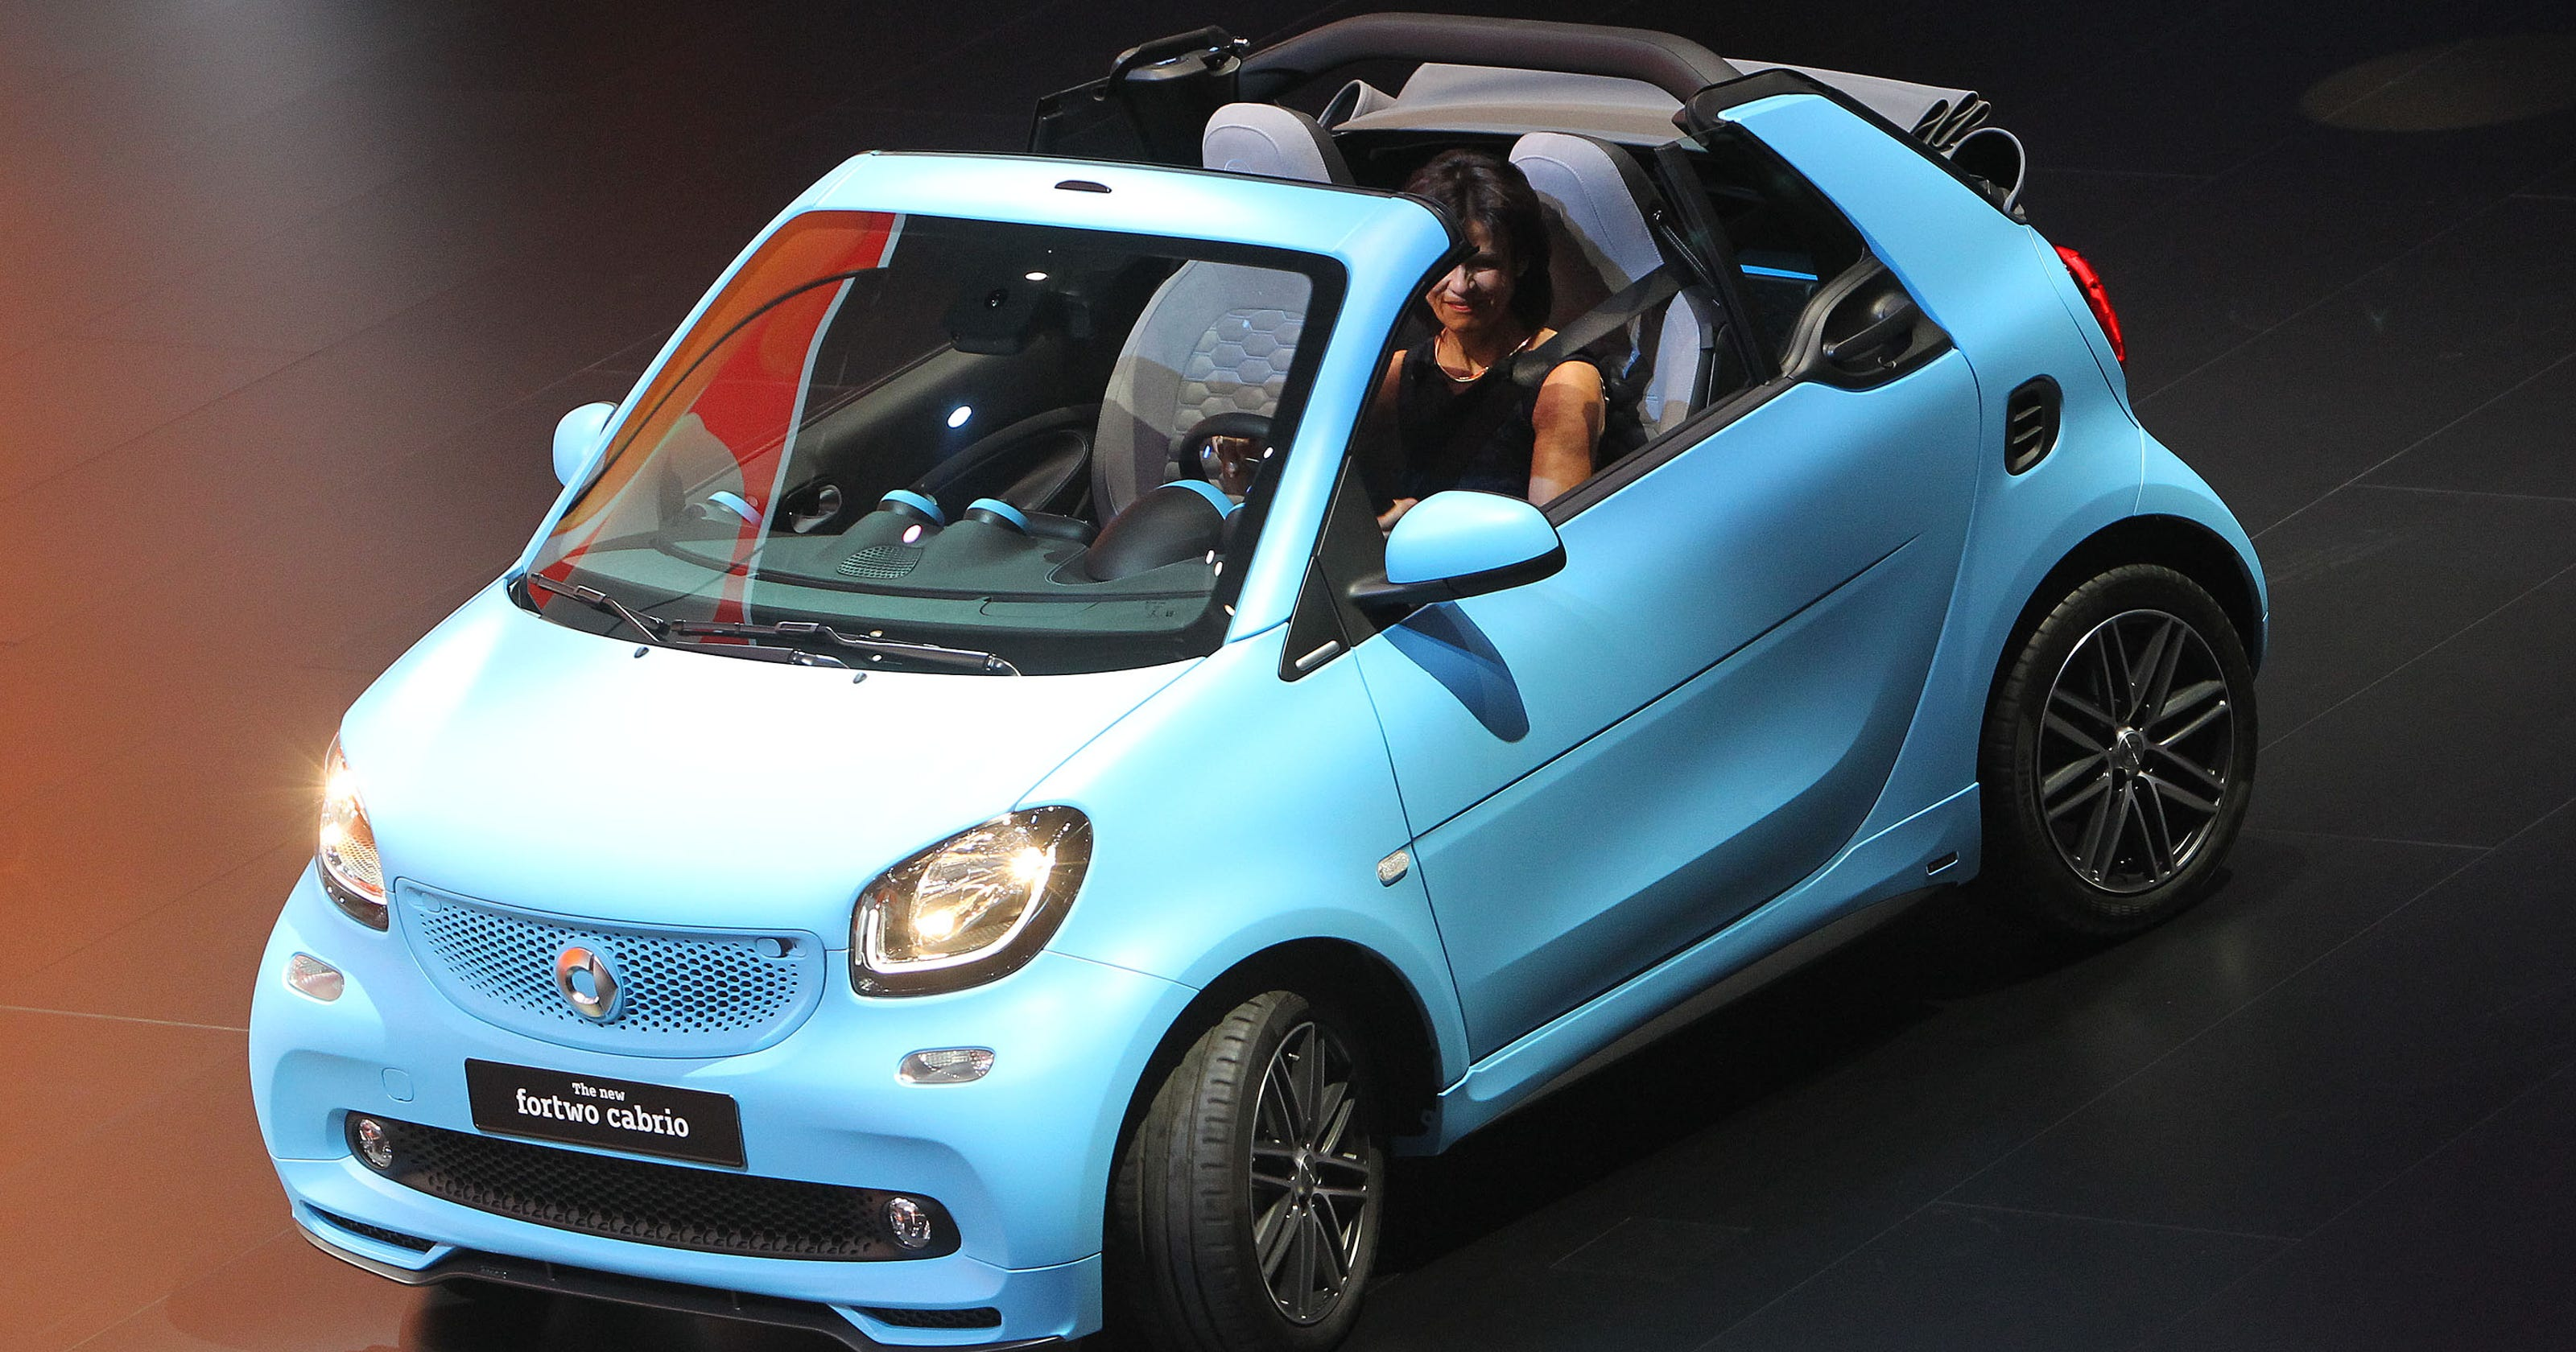 mercedes to stop selling gas-powered smart car in u.s.